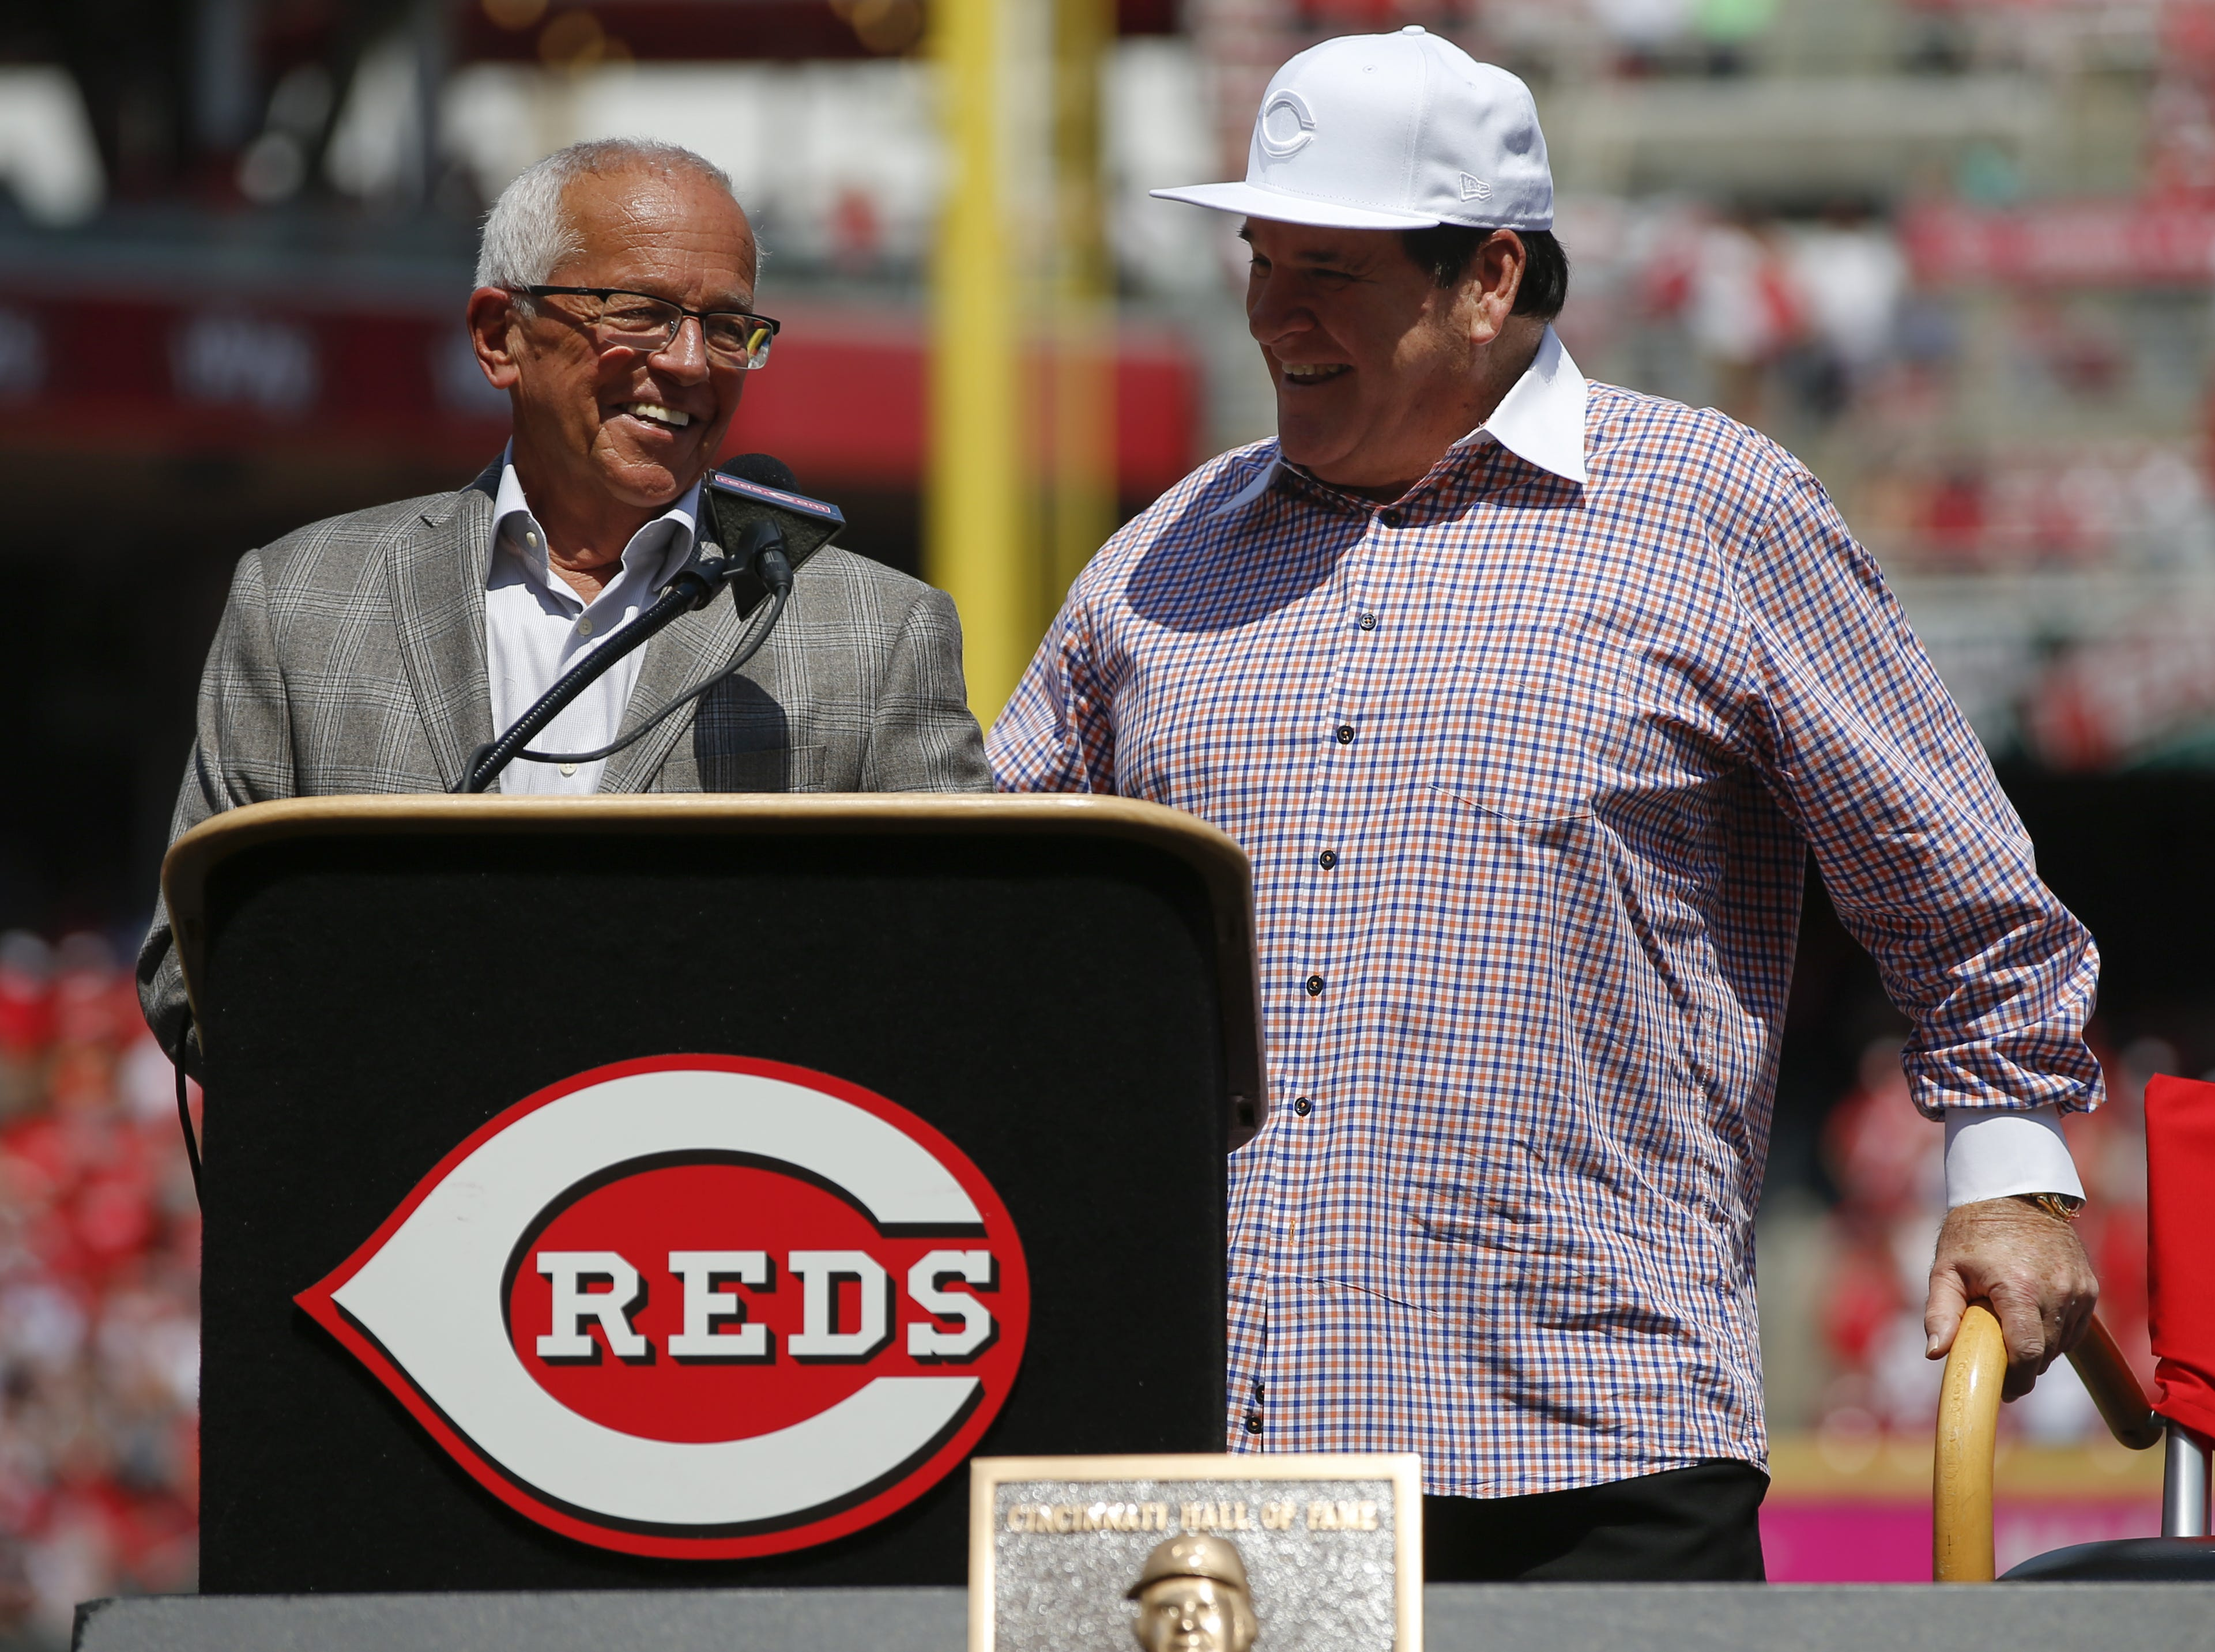 Cincinnati Reds broadcaster Marty Brennaman and 2016 Reds Hall of Fame inductee Pete Rose share a laugh during pregame ceremonies before the MLB game between the San Diego Padres and Cincinnati Reds, Saturday, June 25, 2016, at Great American Ball Park in Cincinnati.